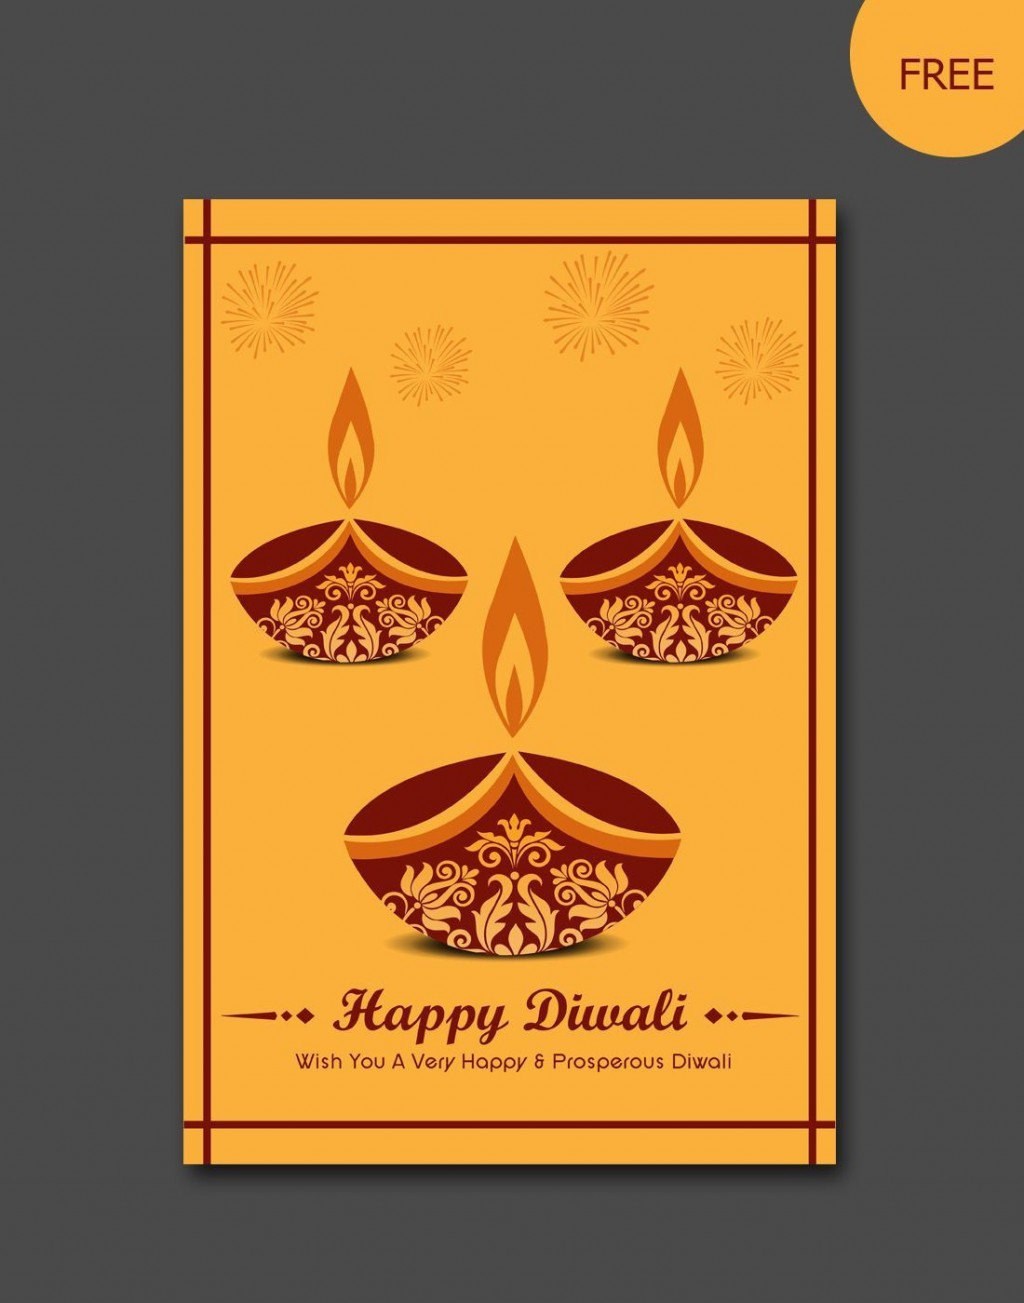 007 Dreaded Diwali Party Invite Template Free Picture Large